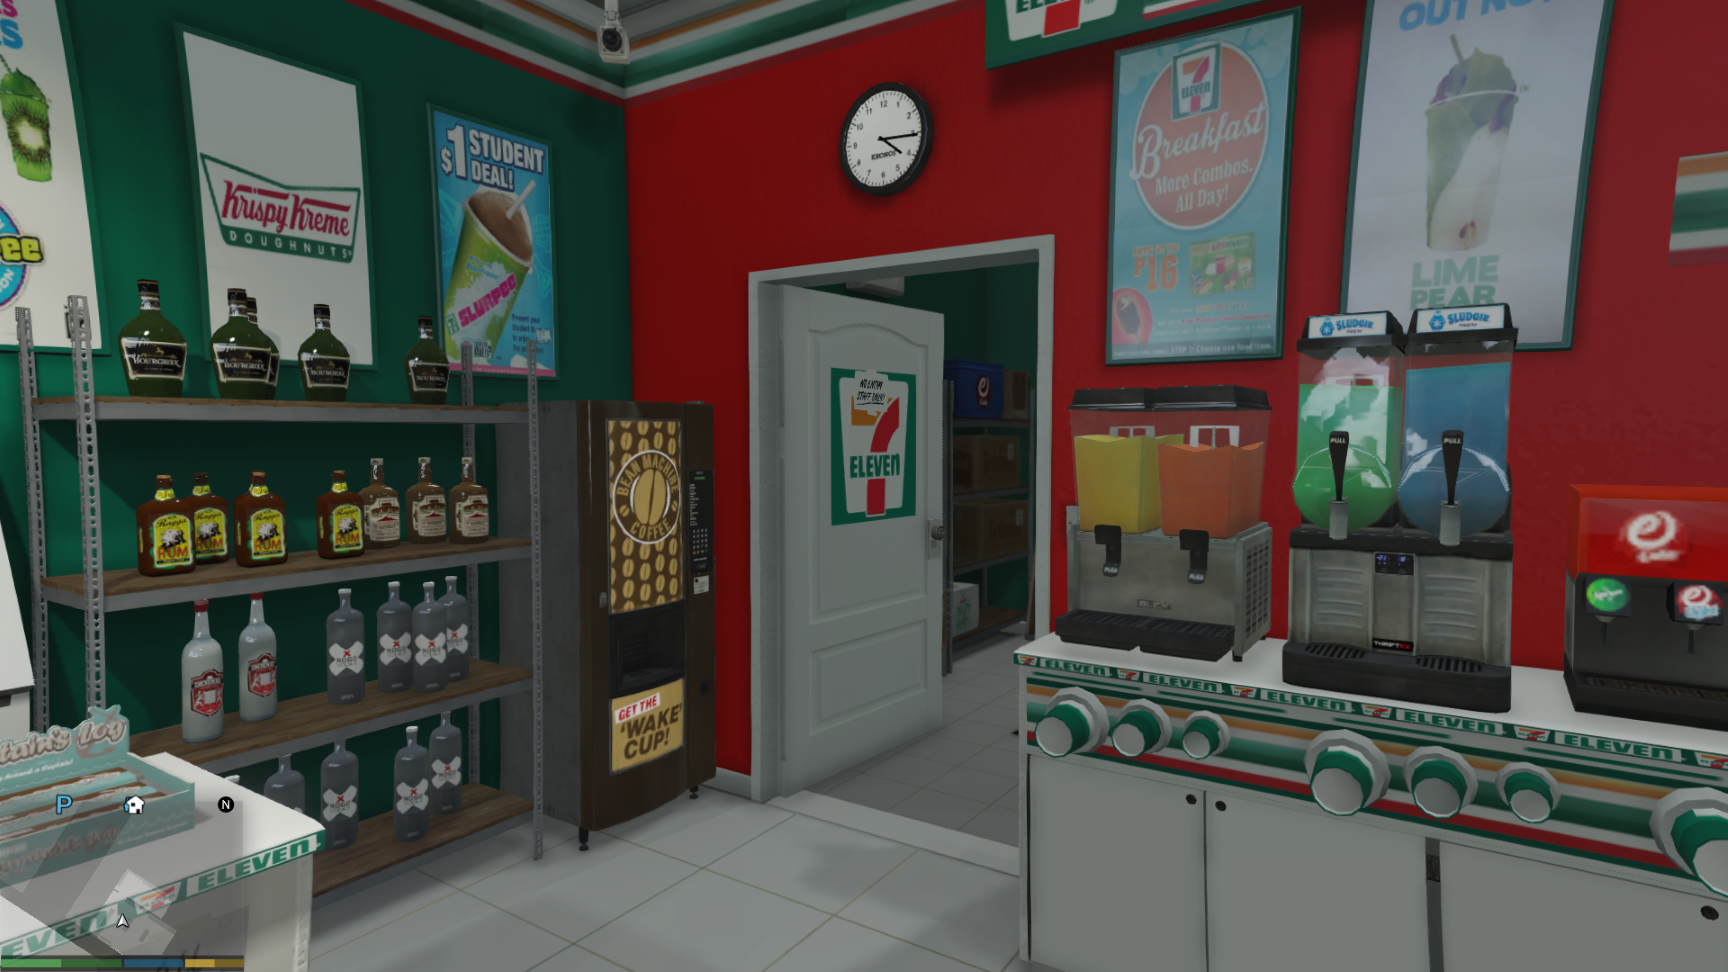 7 Eleven Stores